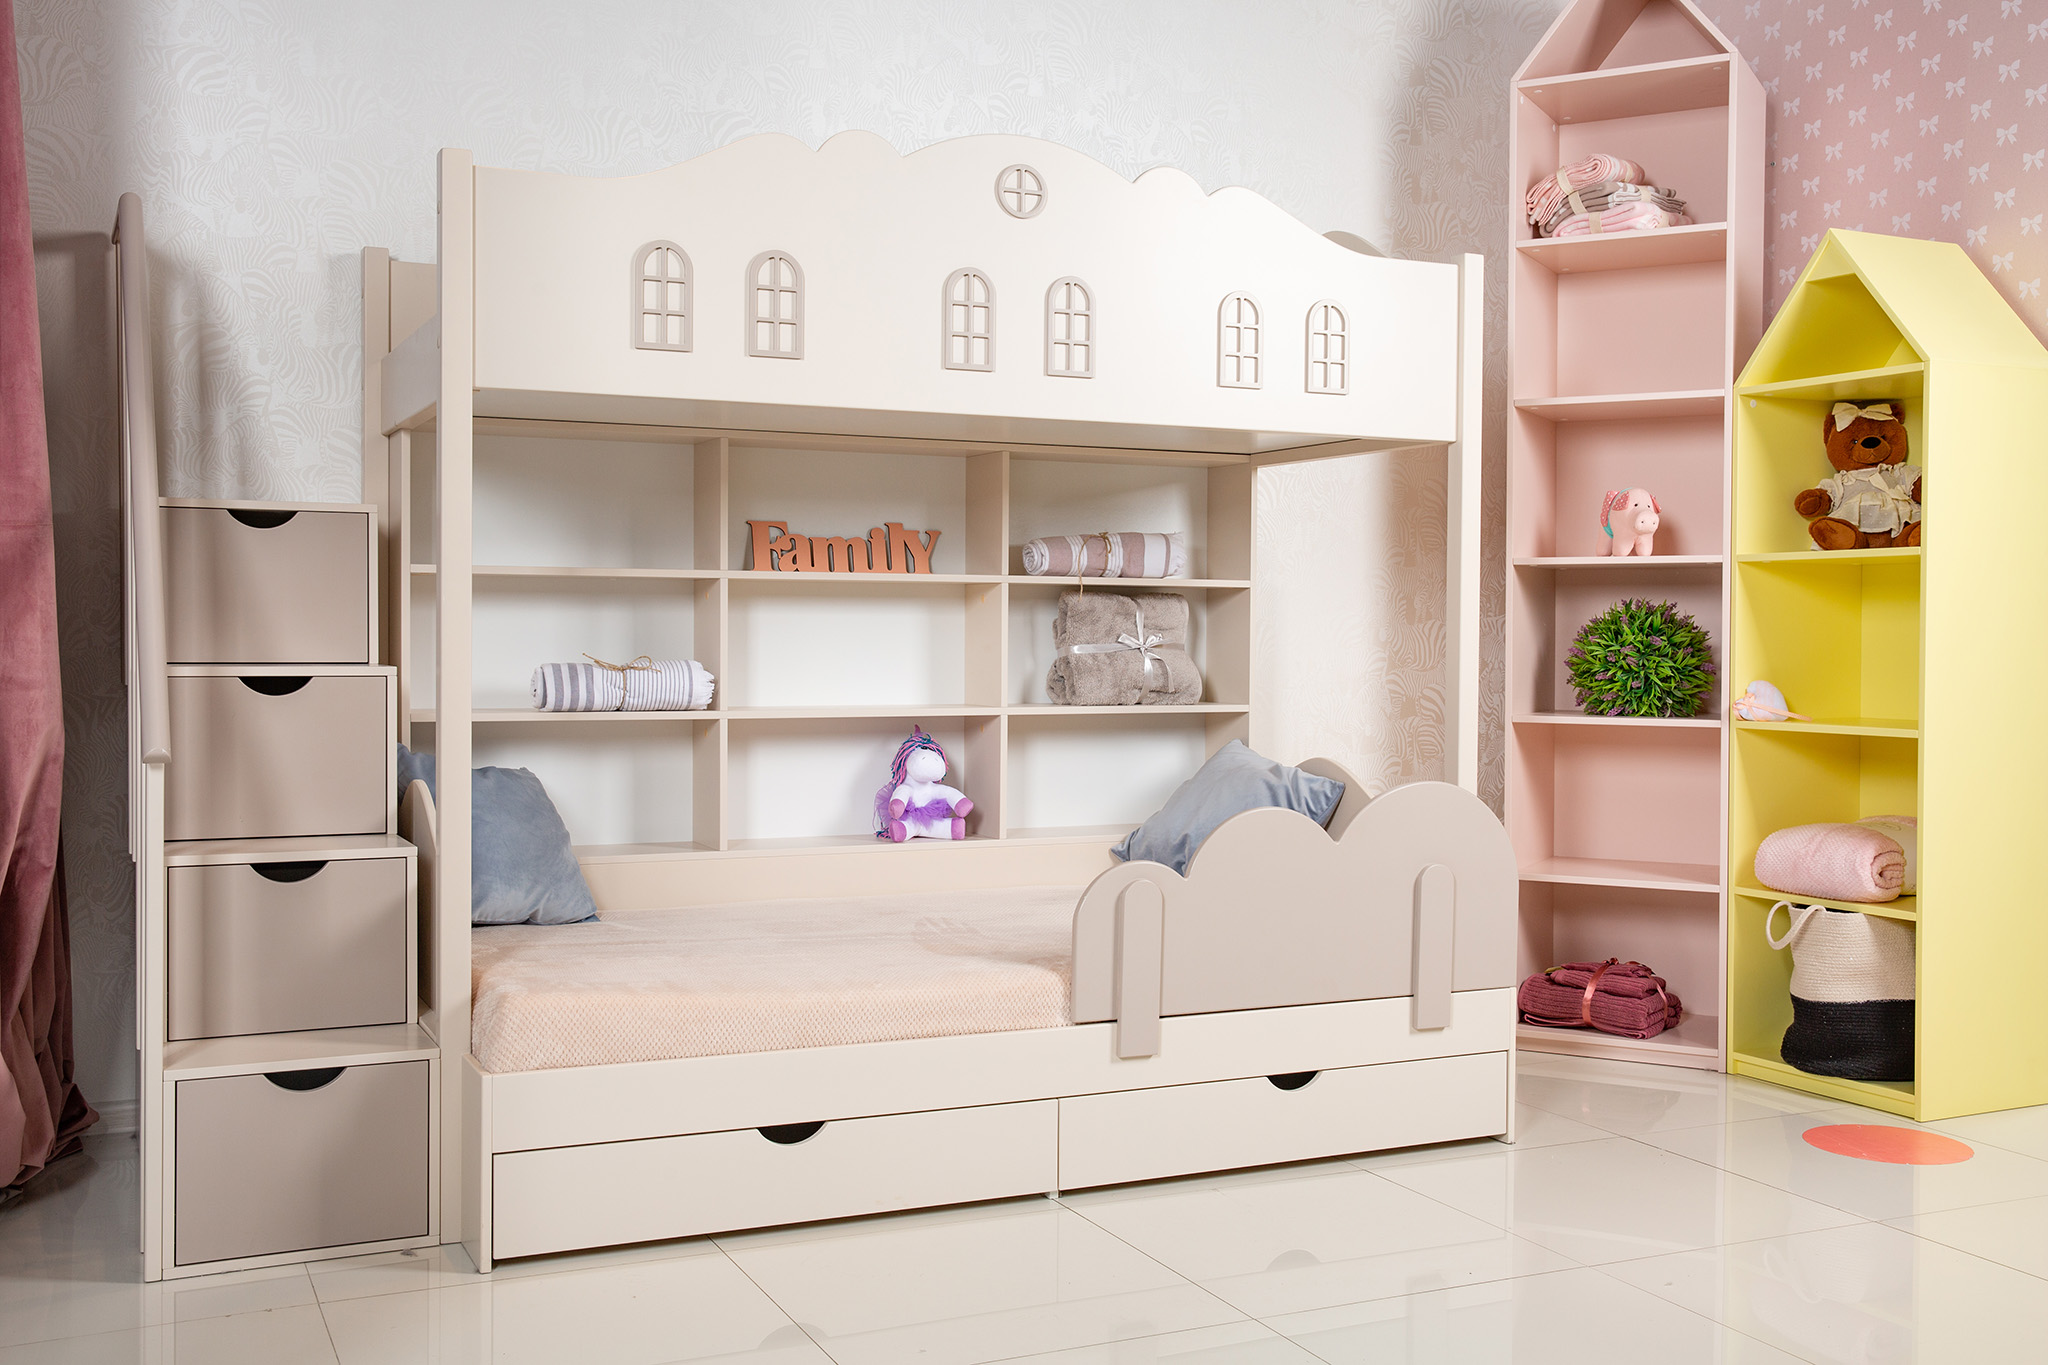 mid sleeper bed, bunk bed, childrens bedroom furniture